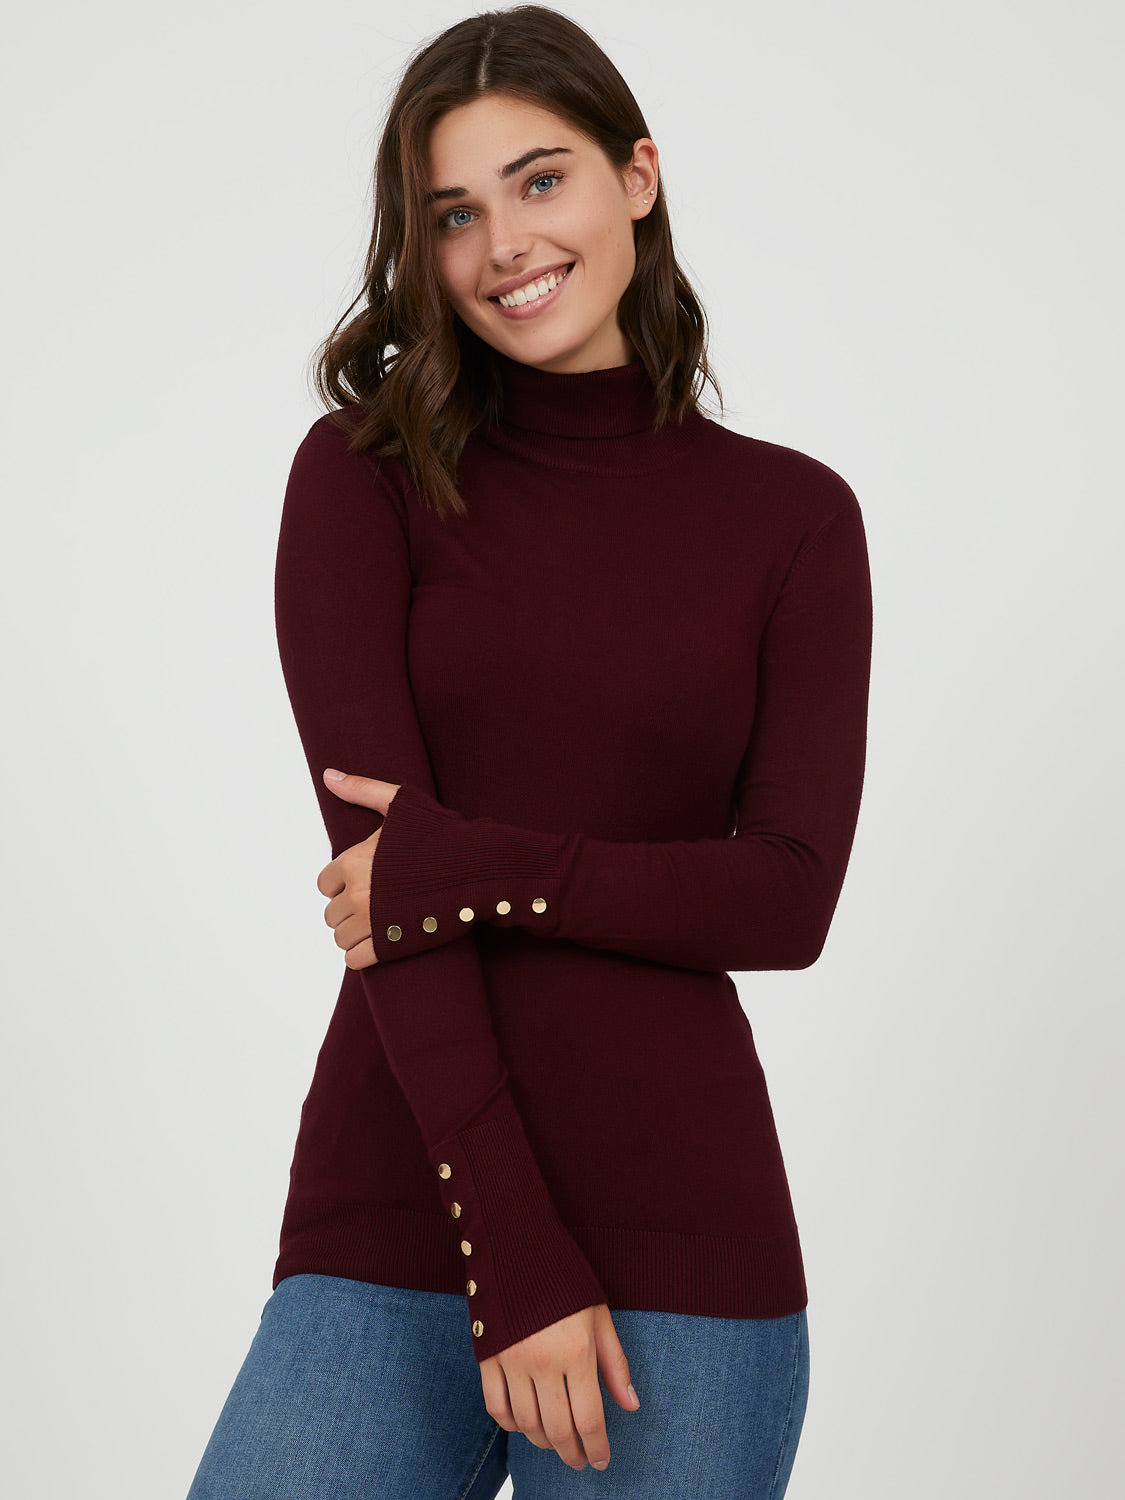 Snap Button Sleeve Turtleneck Sweater